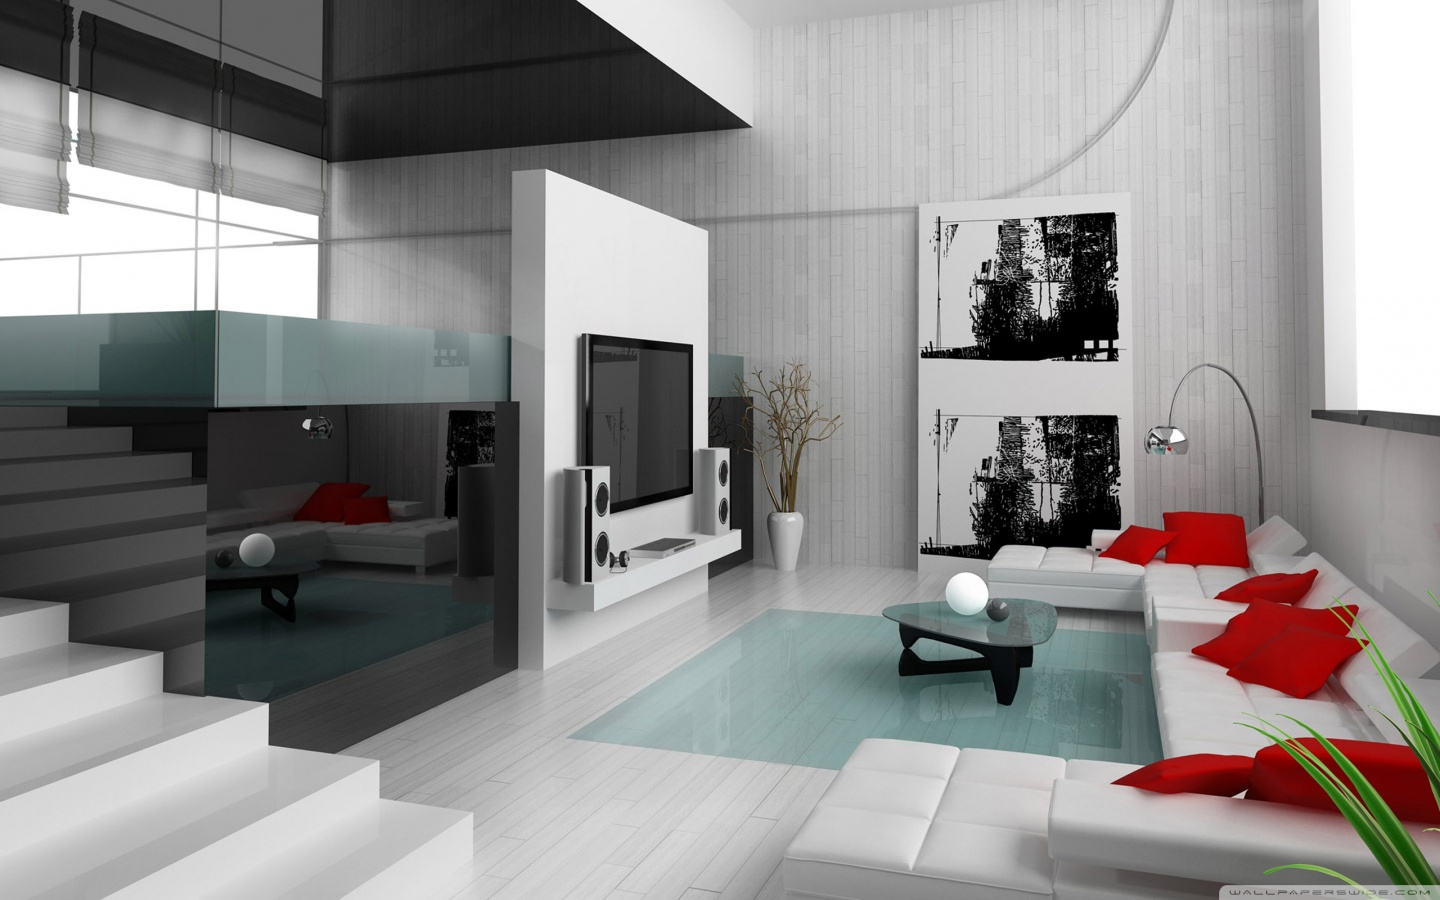 Minimalist interior design imagination art architecture for Minimalist house interior design